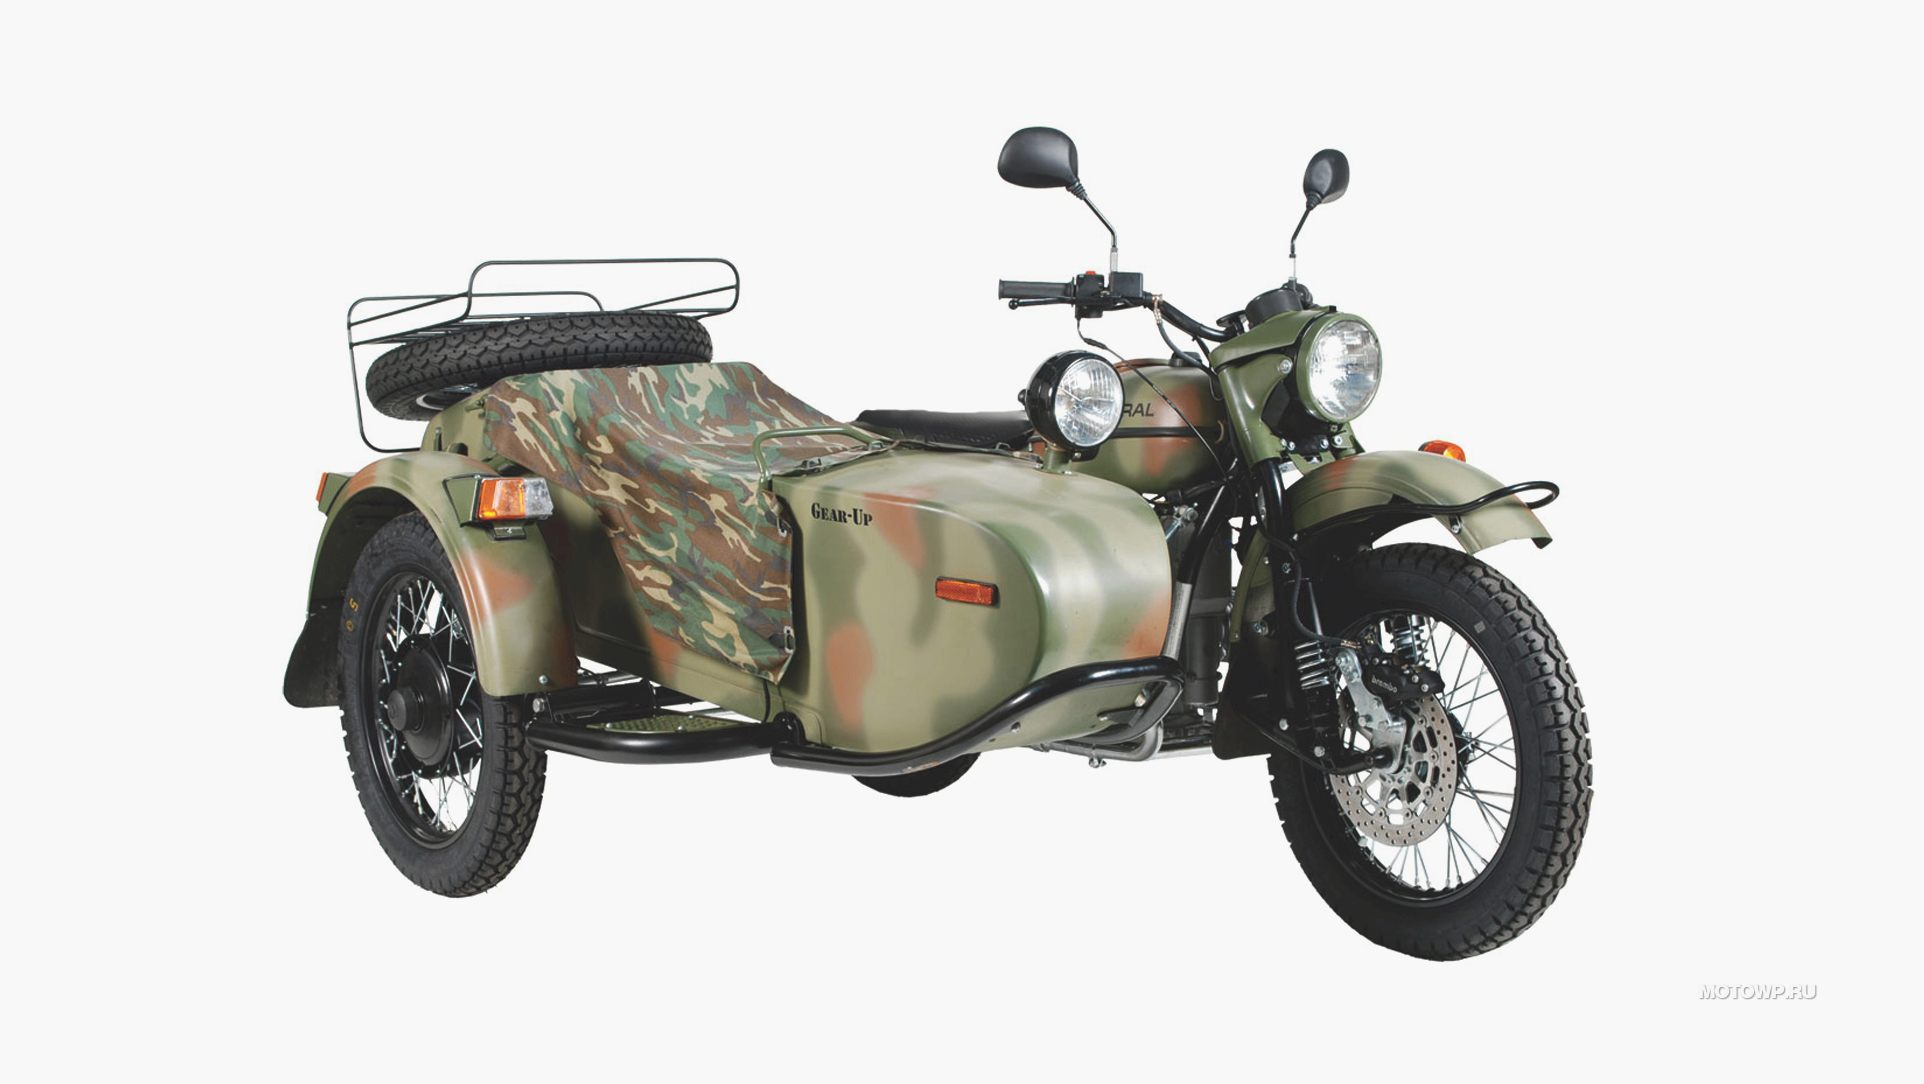 Ural M-63 with sidecar 1974 images #127429